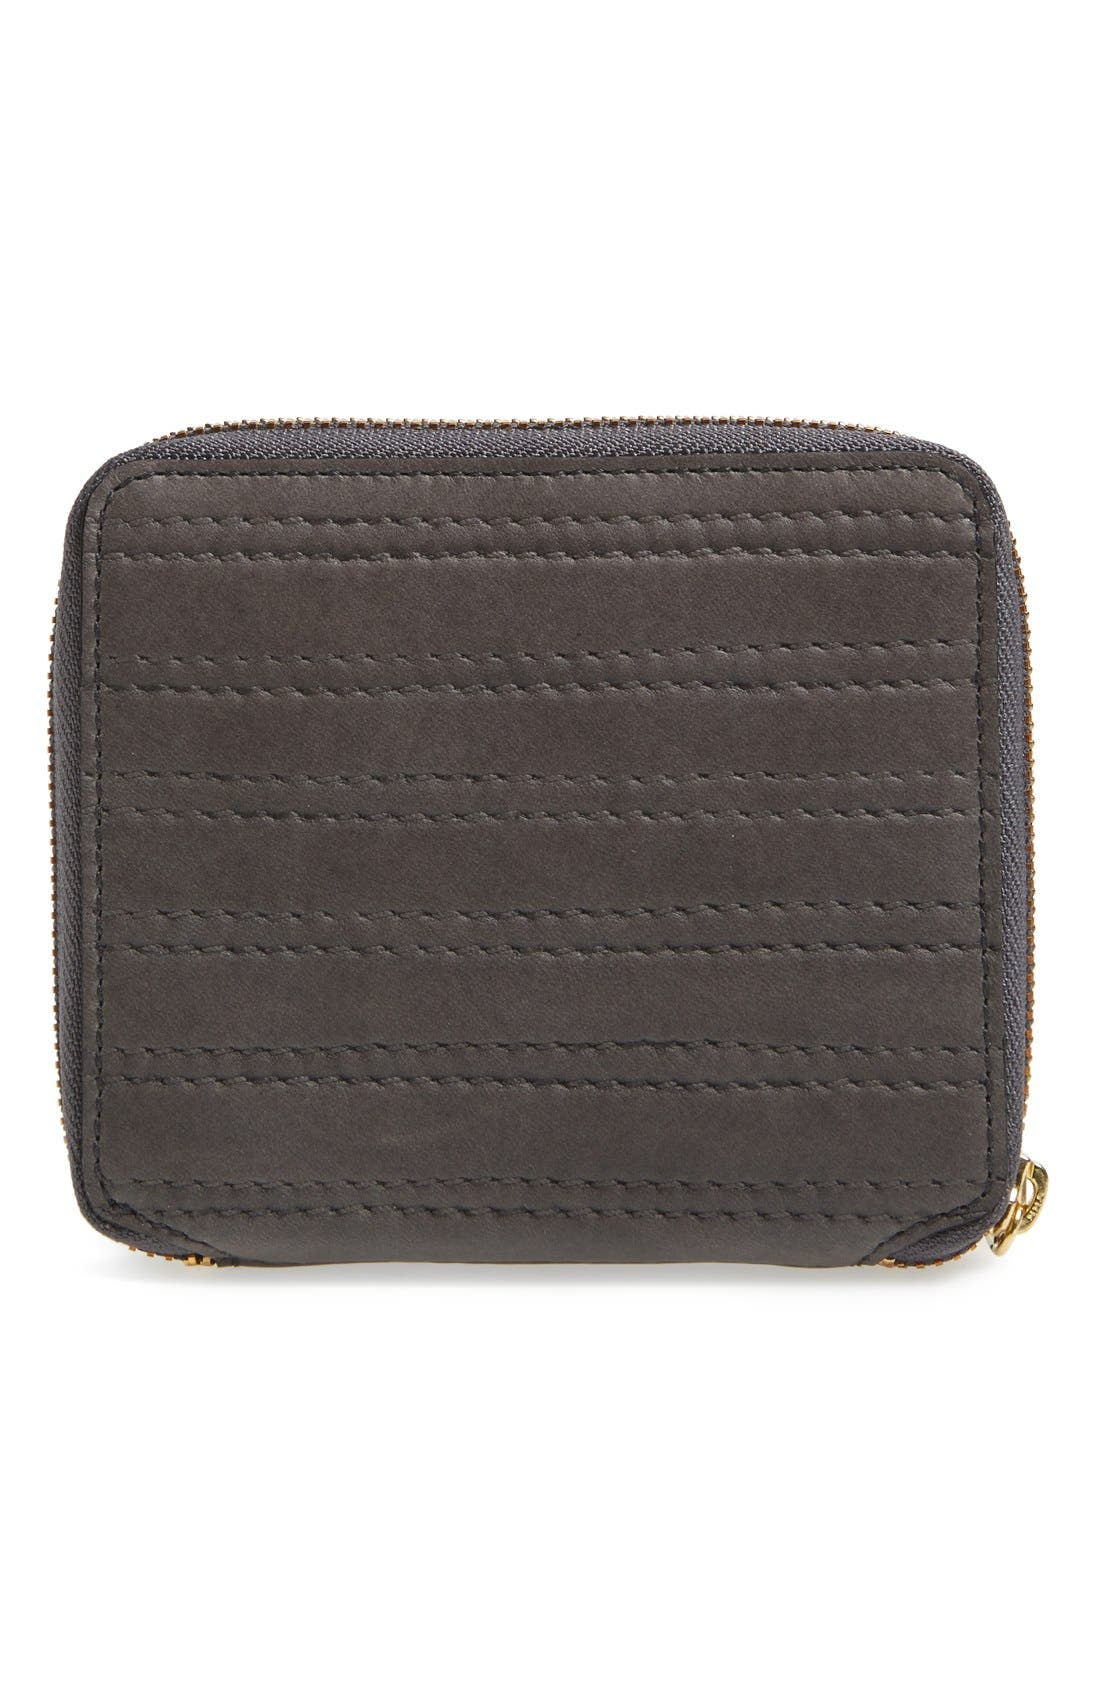 'Embossed Stitch' French Wallet,                             Alternate thumbnail 3, color,                             Grey